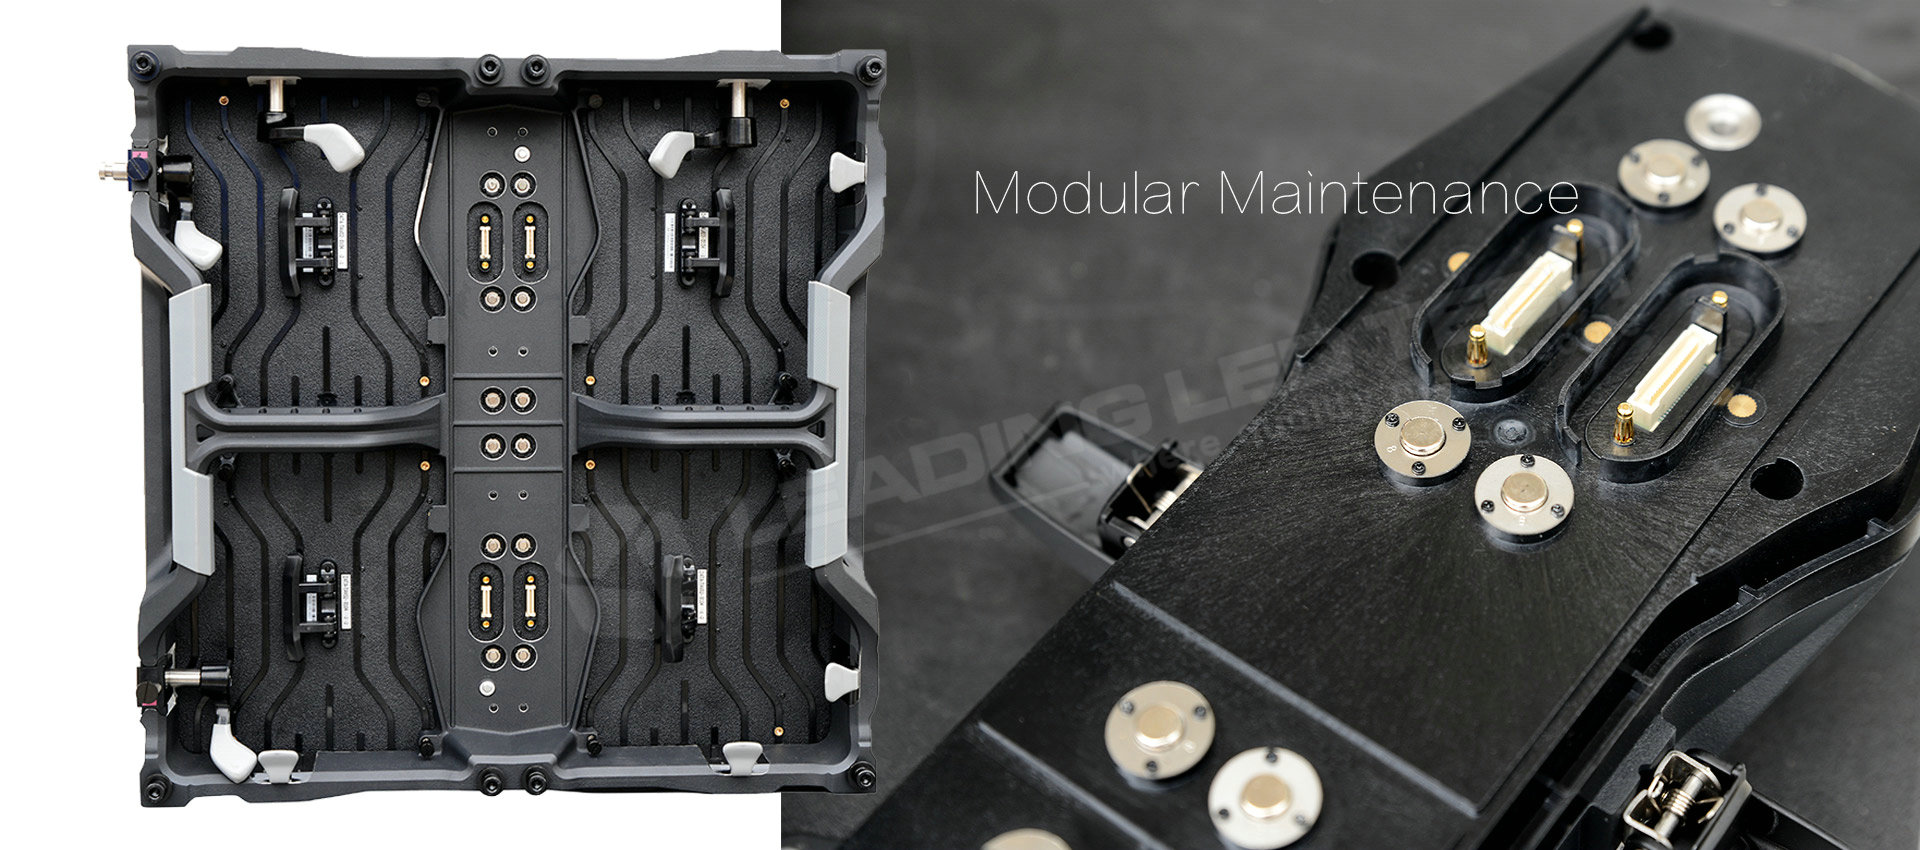 500*500 LED cabinets modular maintenance for the PSU